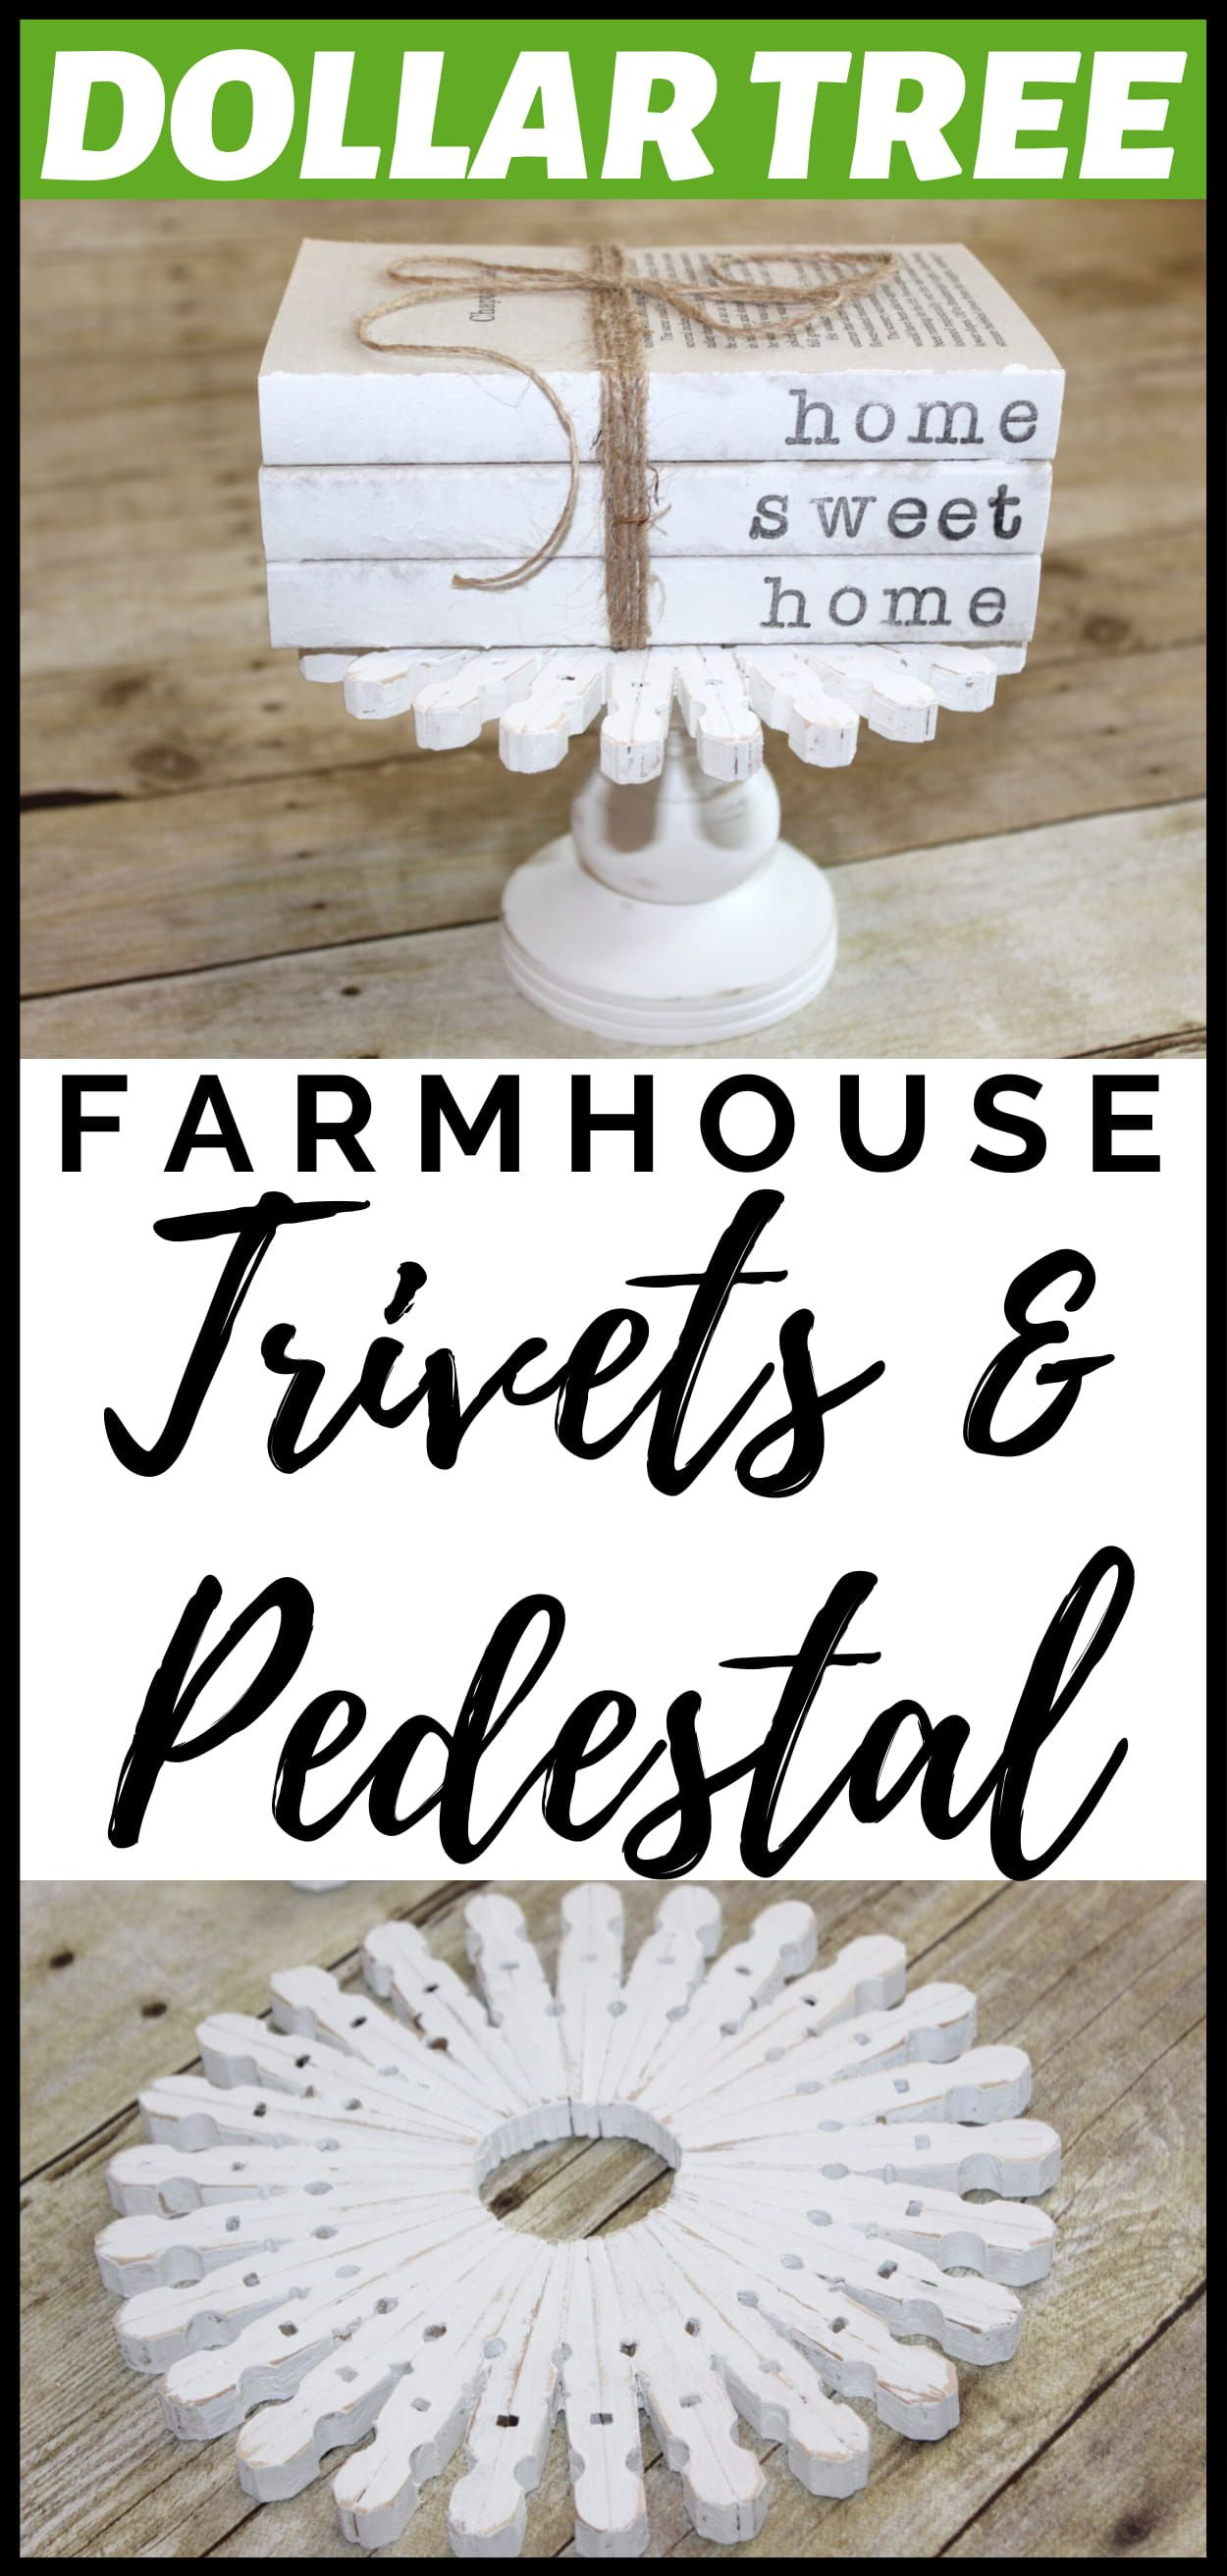 DIY Dollar Tree Trivets and Pedestal